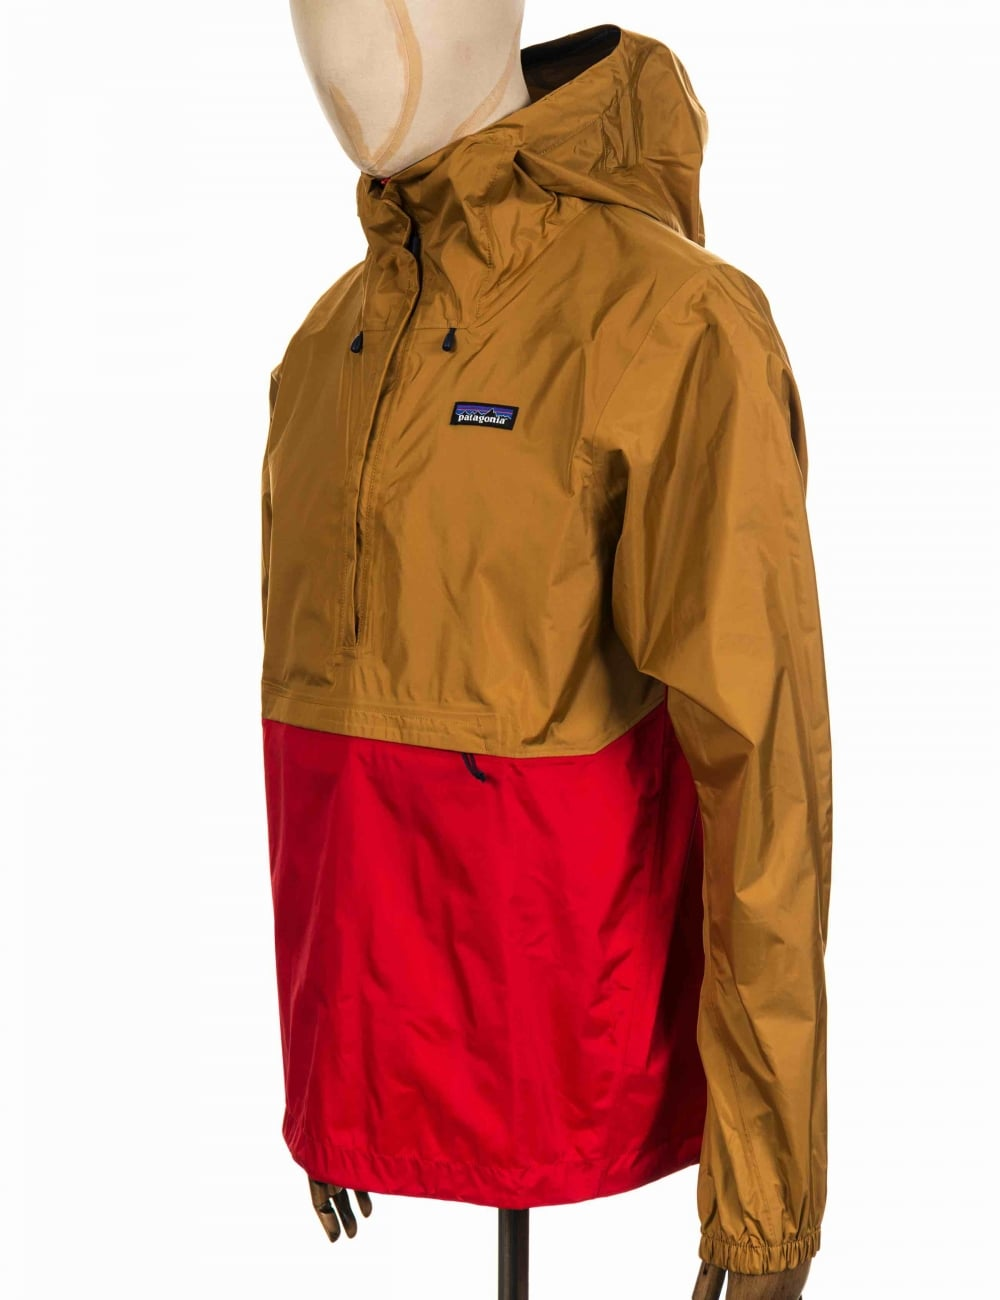 Patagonia Torrentshell Pullover Jacket - Oaks Brown/Fire ...